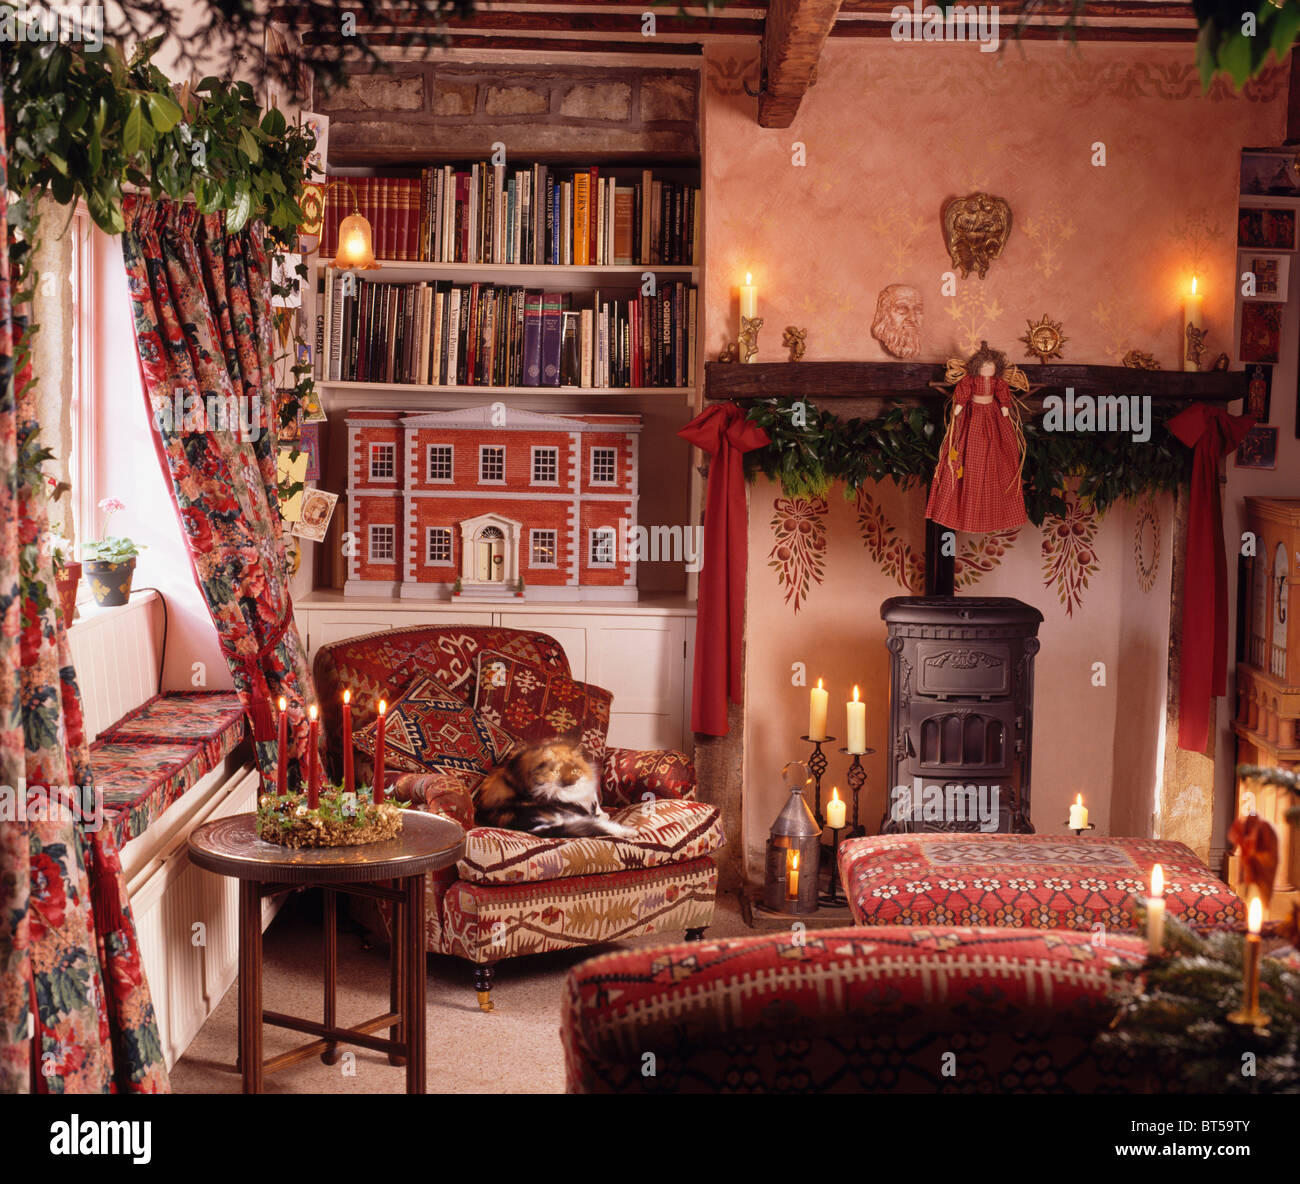 How To Decorate Kitchen Shelves Lighted Candles Fireplace With Wood Burning Stove In